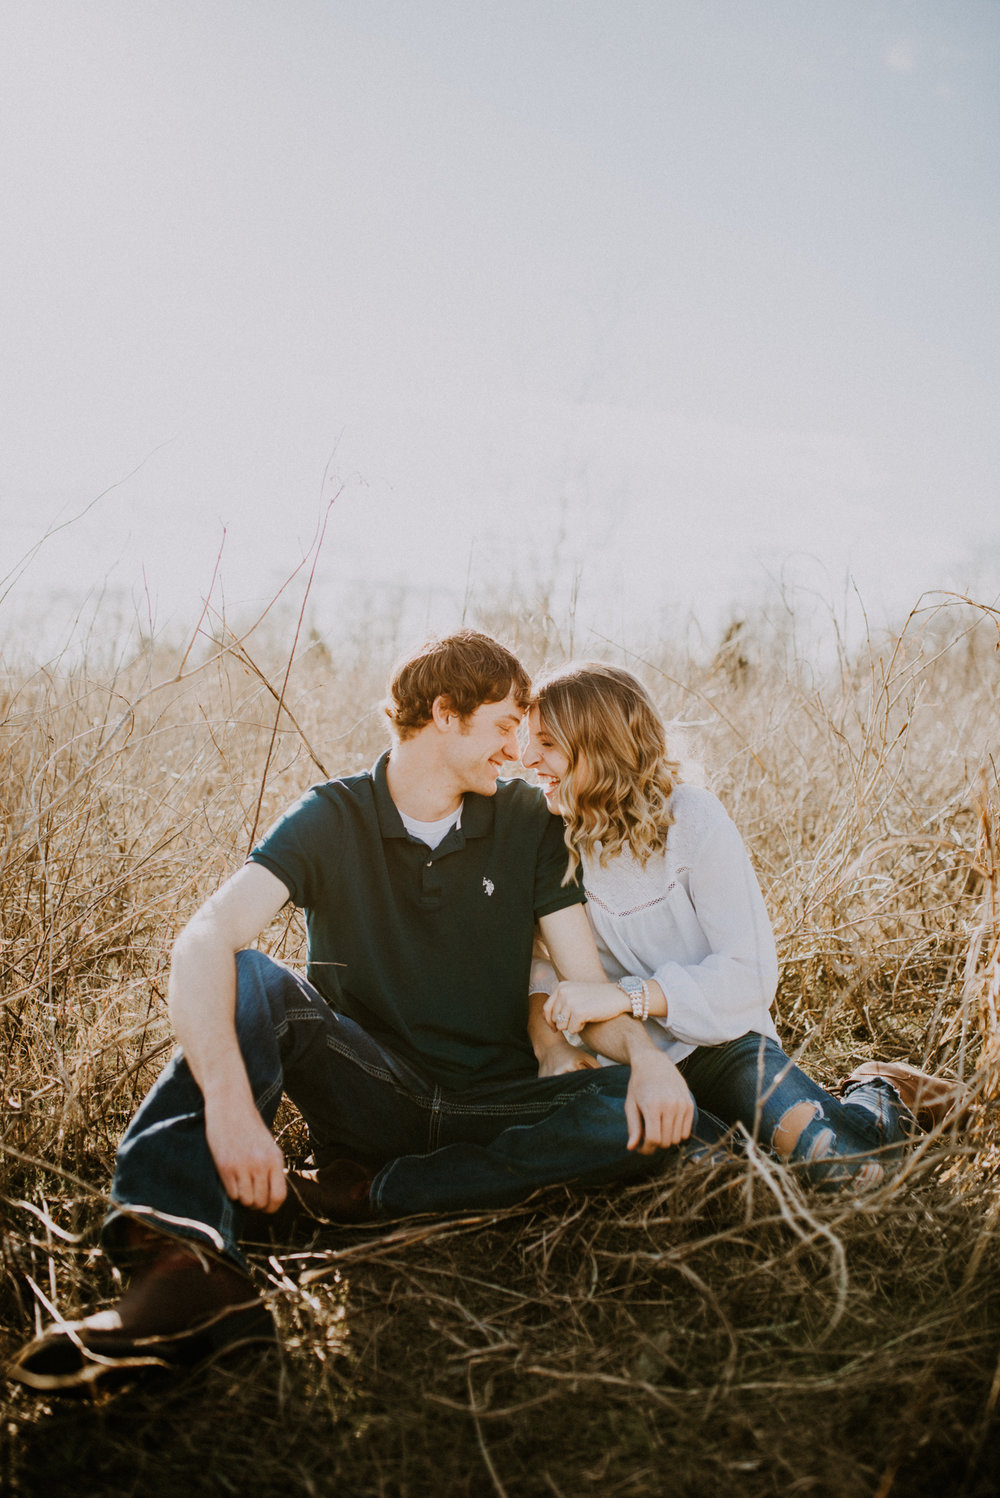 See another Engagement session here! -